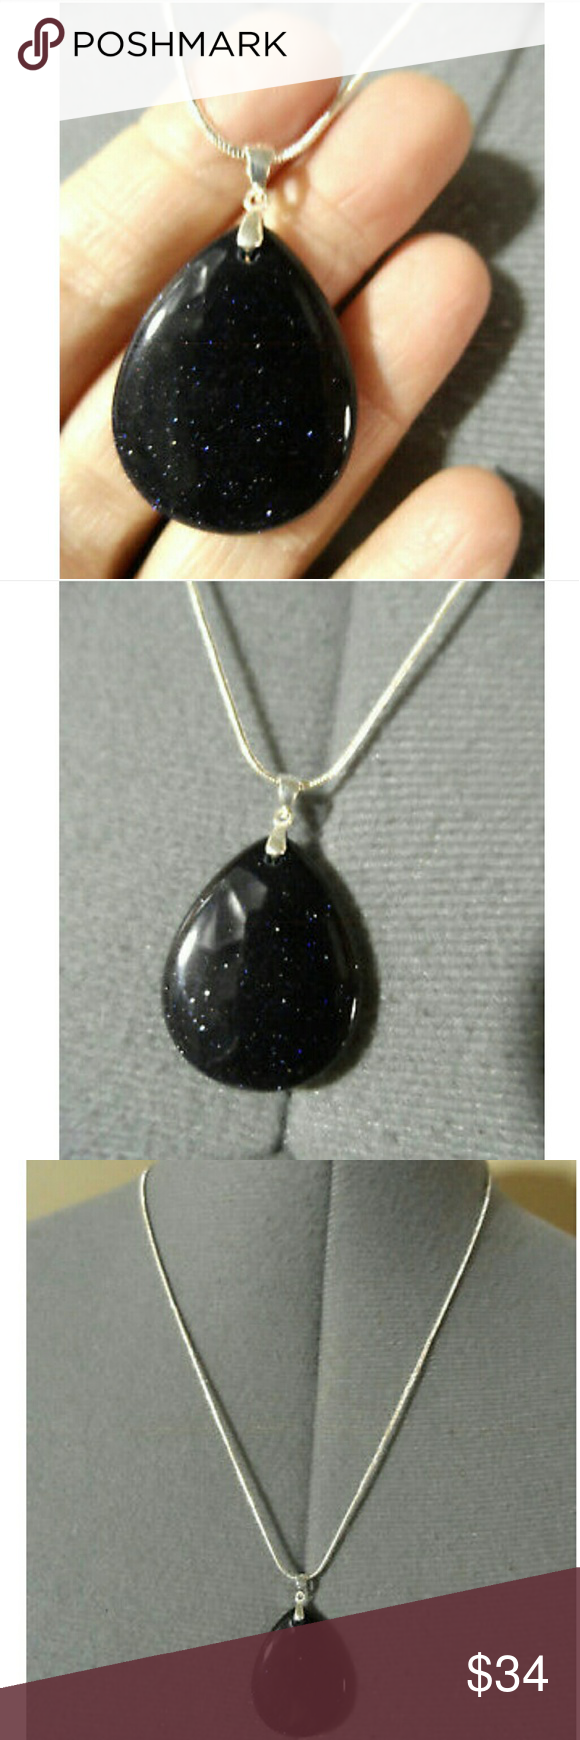 New black goldstone pendant necklace set silver lobster clasp